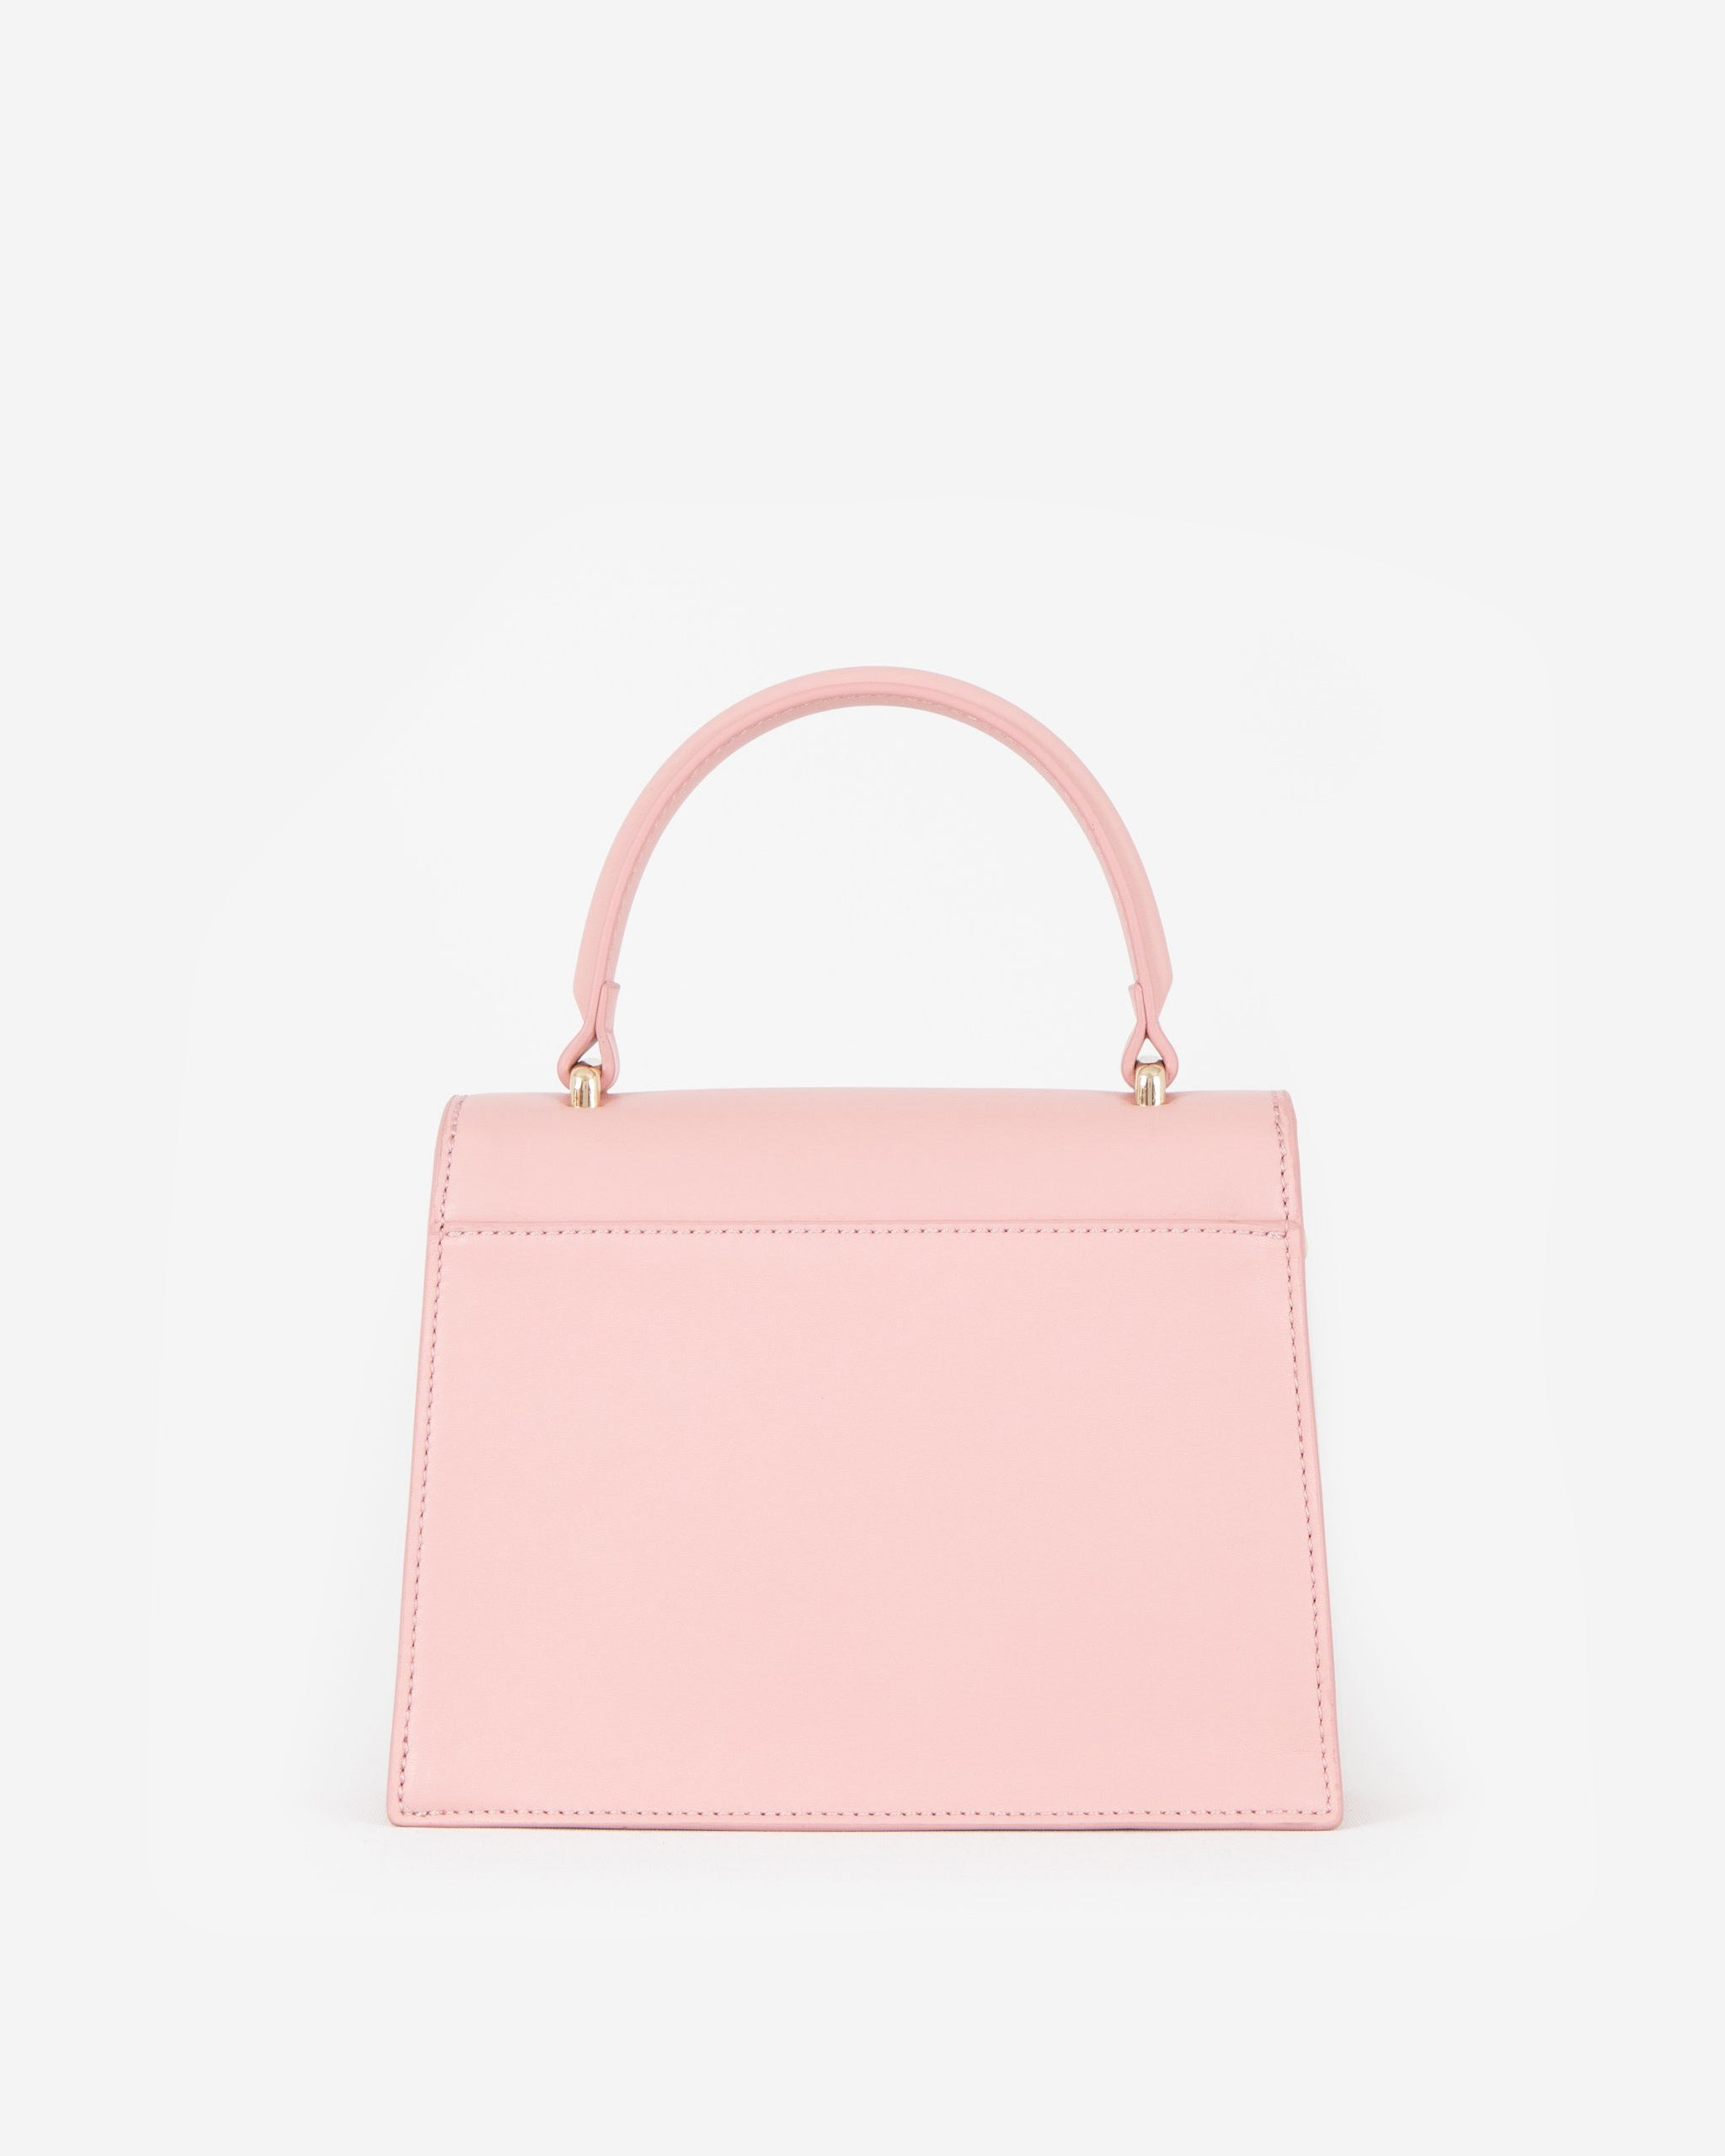 Pre-order (Late July): Evening Bag in Pink with Personalised Hardware